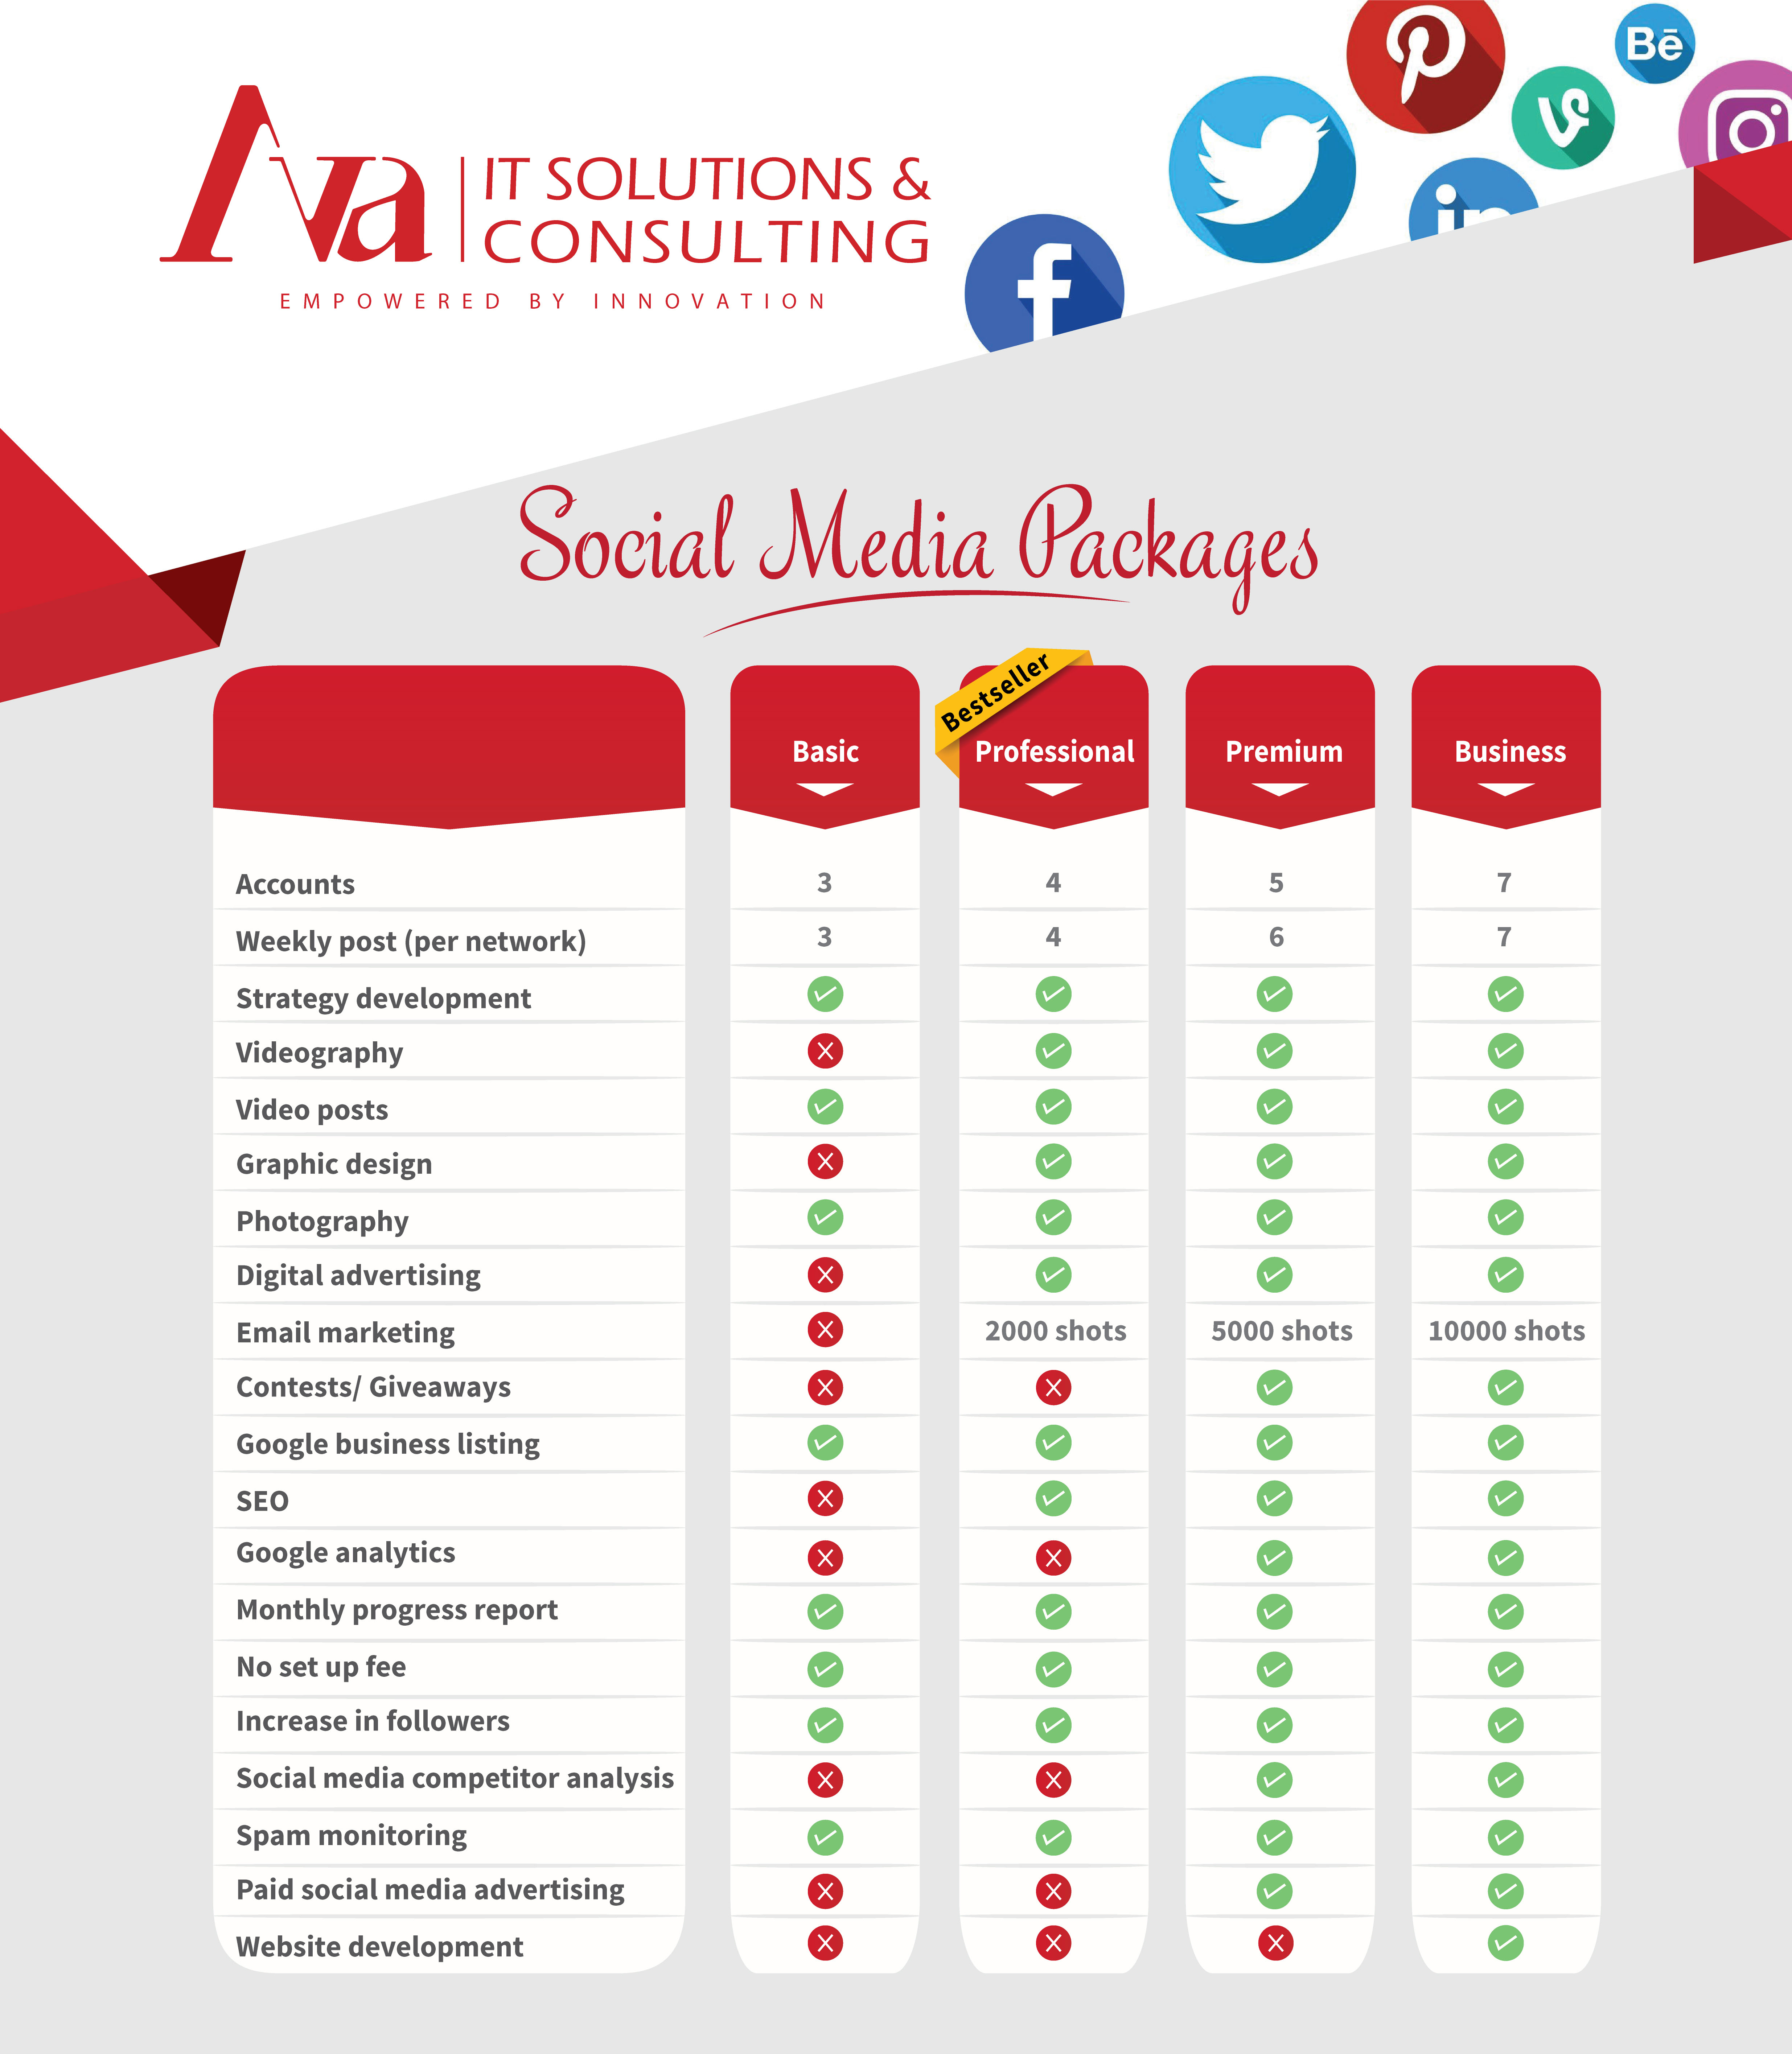 Social media packages AVAIT